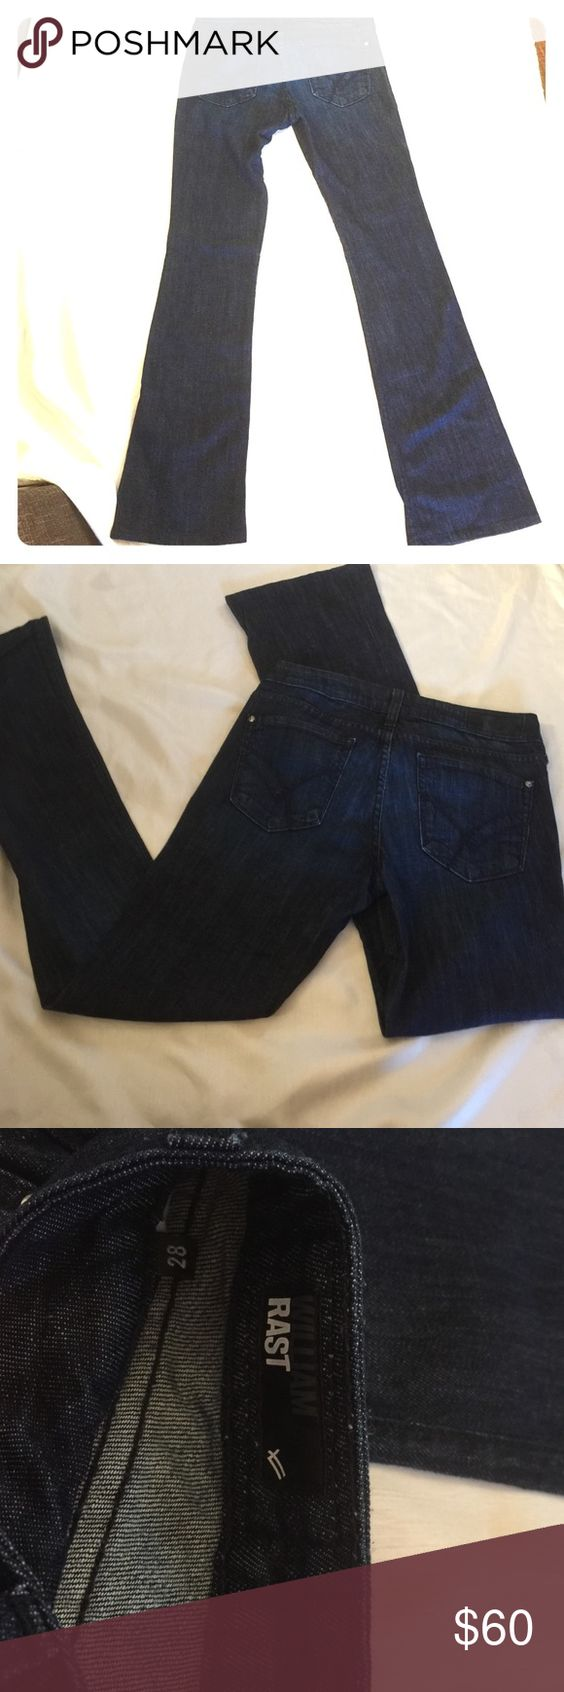 William Rast blue jean perfect condition. Size 28 William Rast dressy jeans size 28 bootcut. These are in perfect condition. Only worn once. Will be great for any occasion. William Rast Jeans Boot Cut